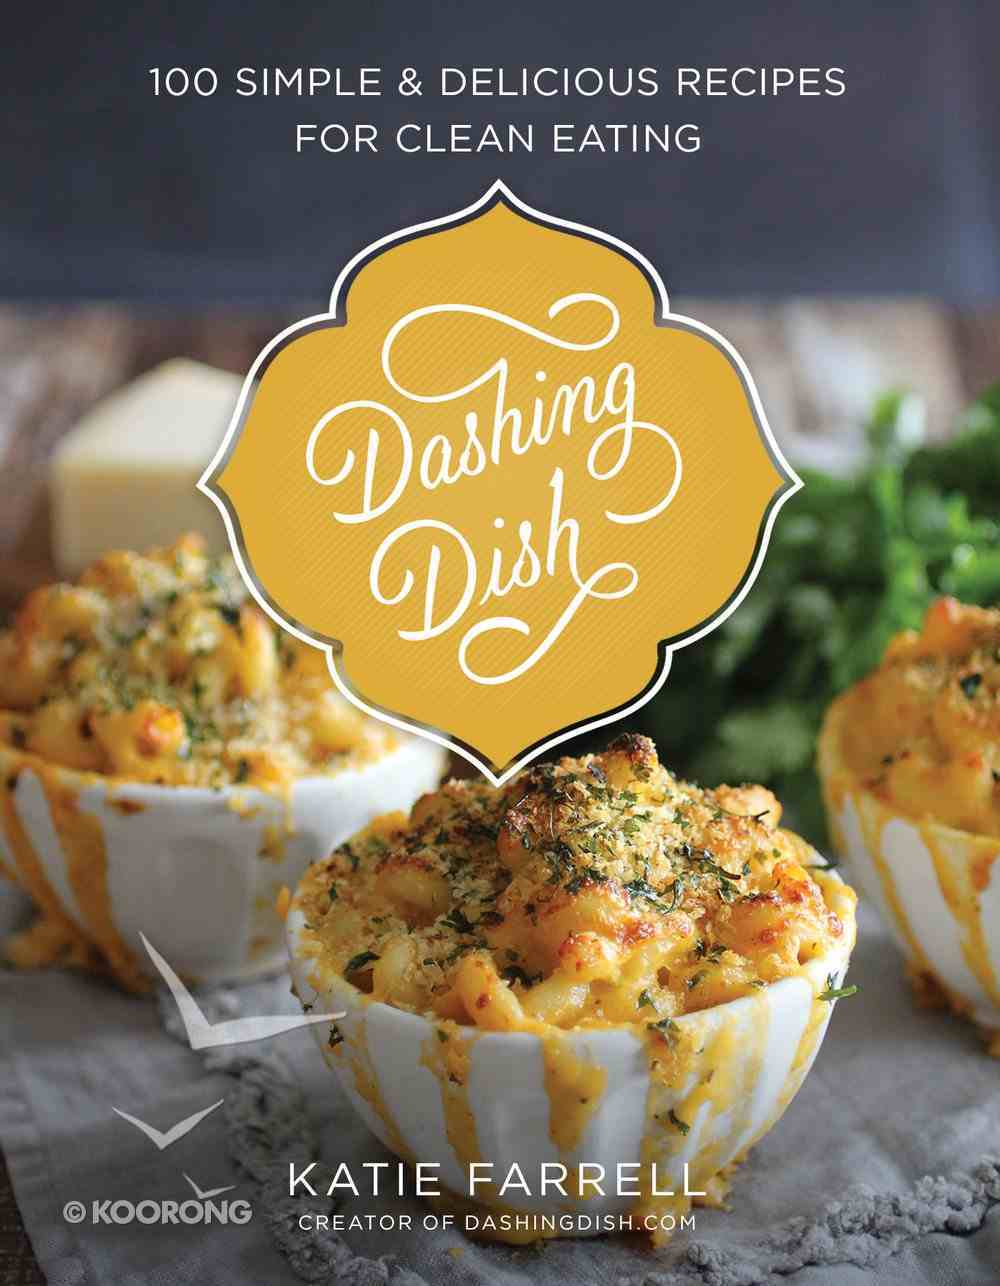 Dashing Dish eBook